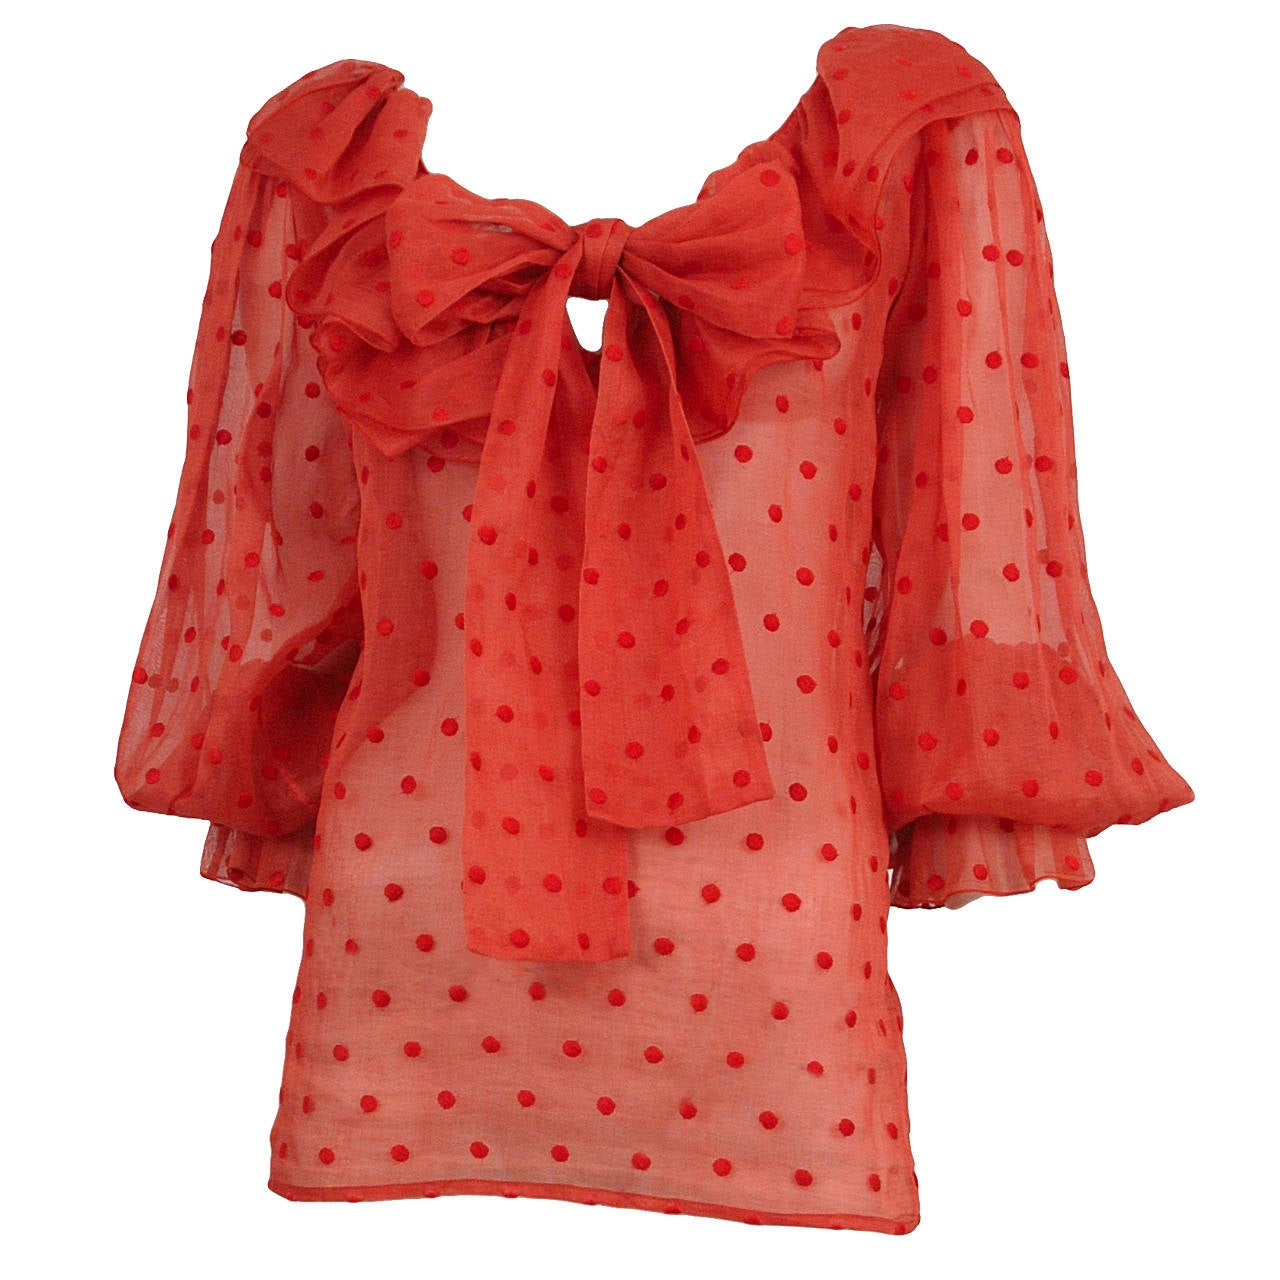 Find fab polka dot blouses in a variety of colors and vintage-style styles. Menu. ModCloth. Tops Blouses Polka Dot Tops. Polka Dot Blouses & Tops. Refine By Red Yellow Green Blue Brown Black Grey White Size XXS XS S M L XL 1X 2X 3X 4X 0 2 4 6 8 10 12 14 16 18 20 22